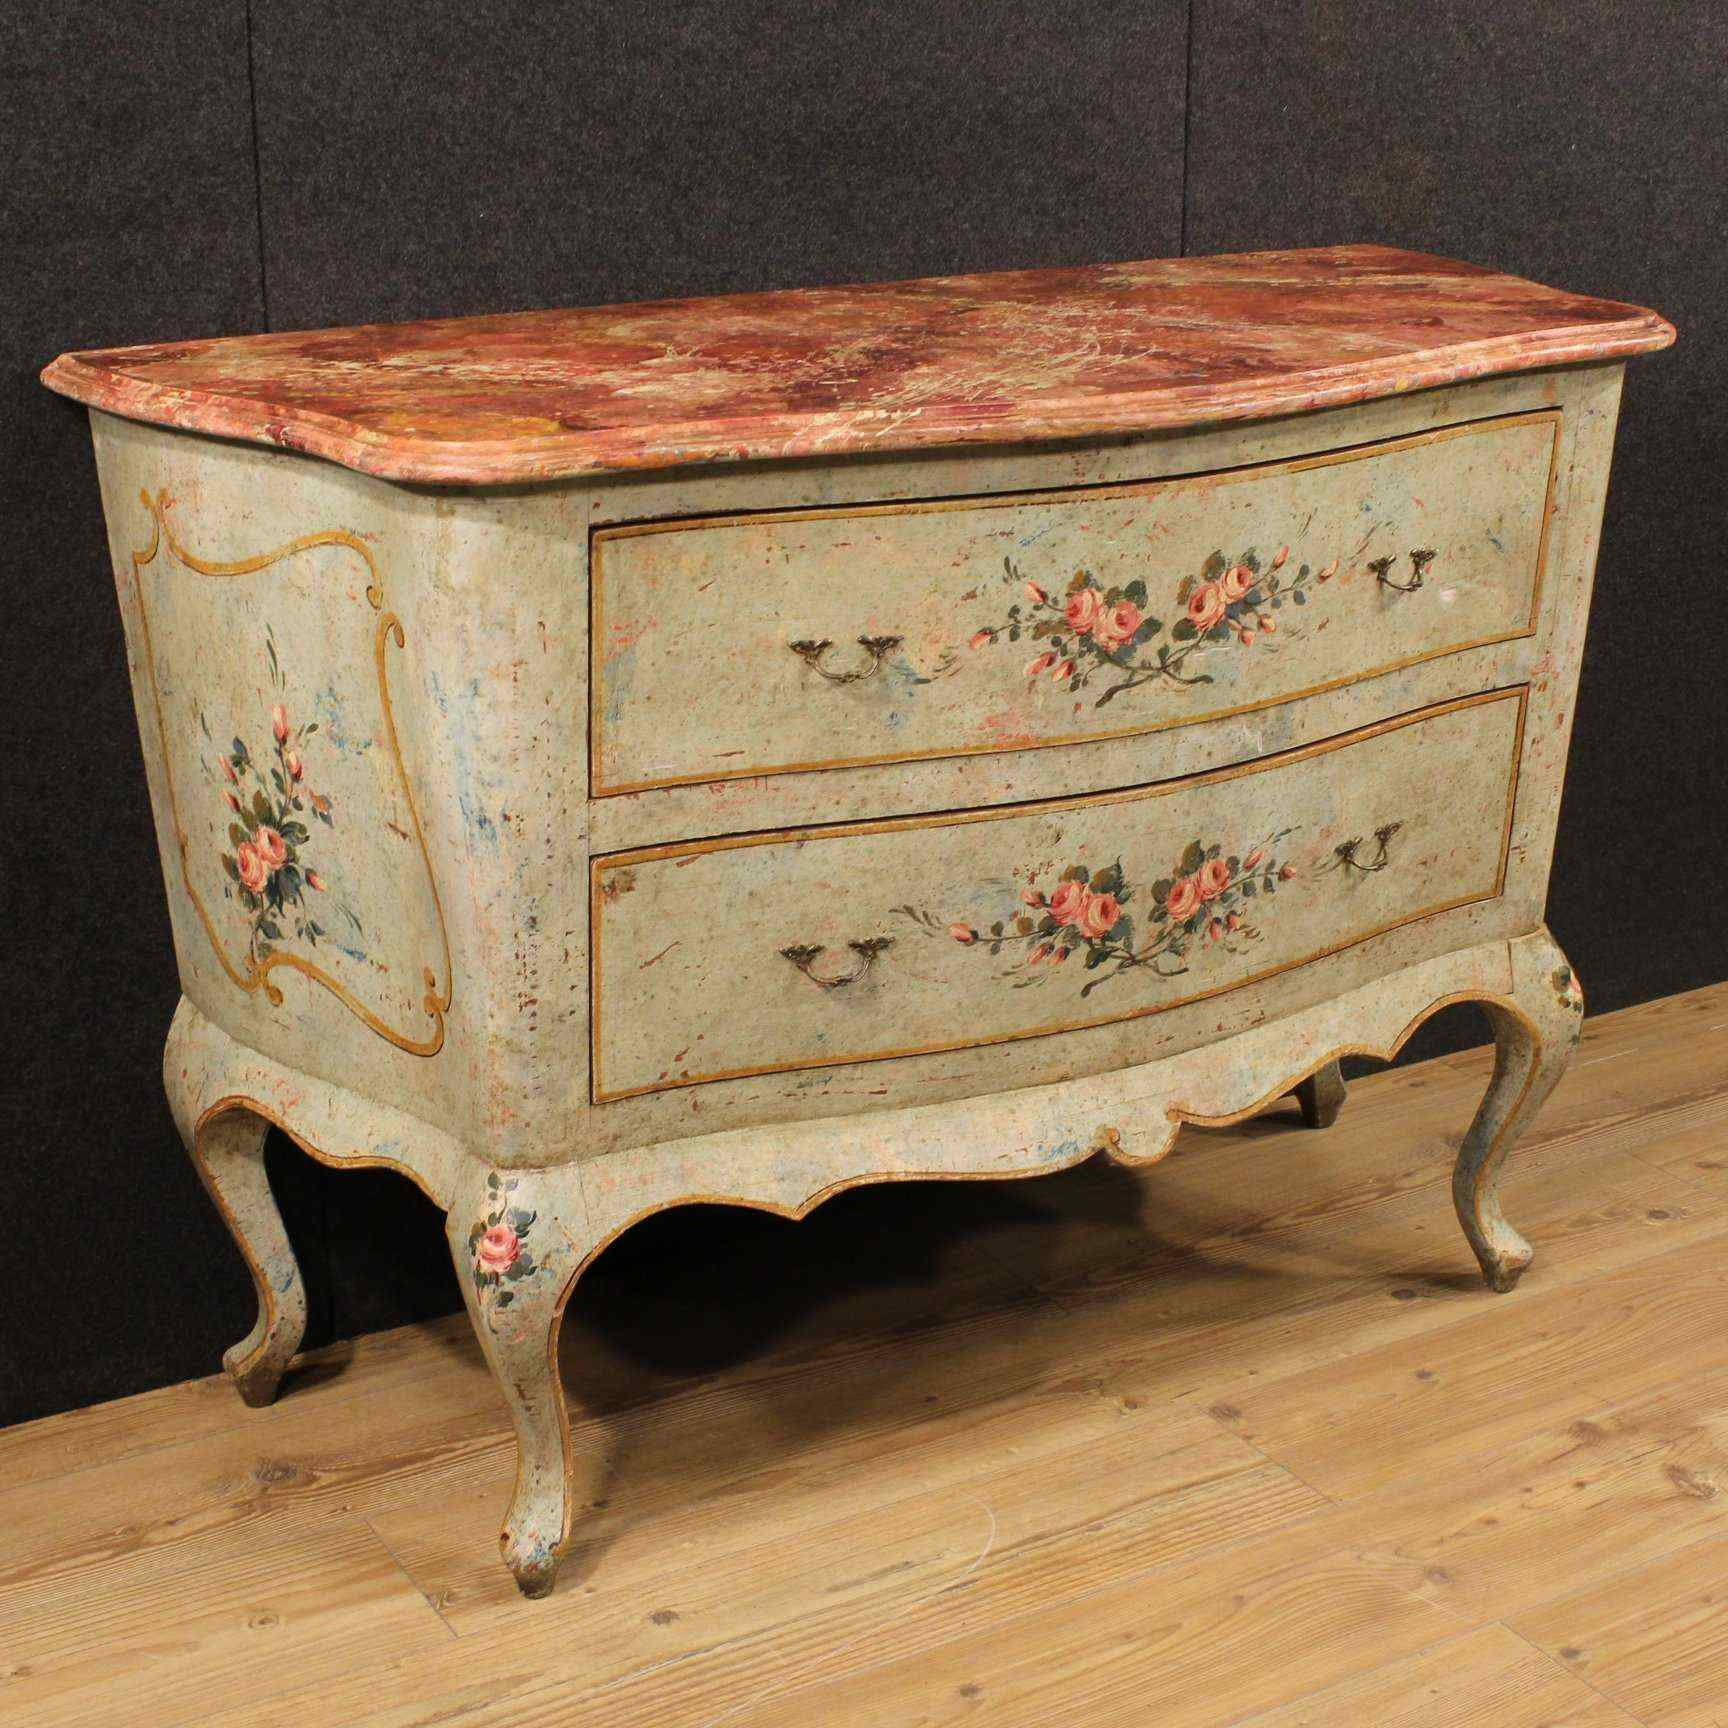 Venetian dresser in lacquered and painted wood